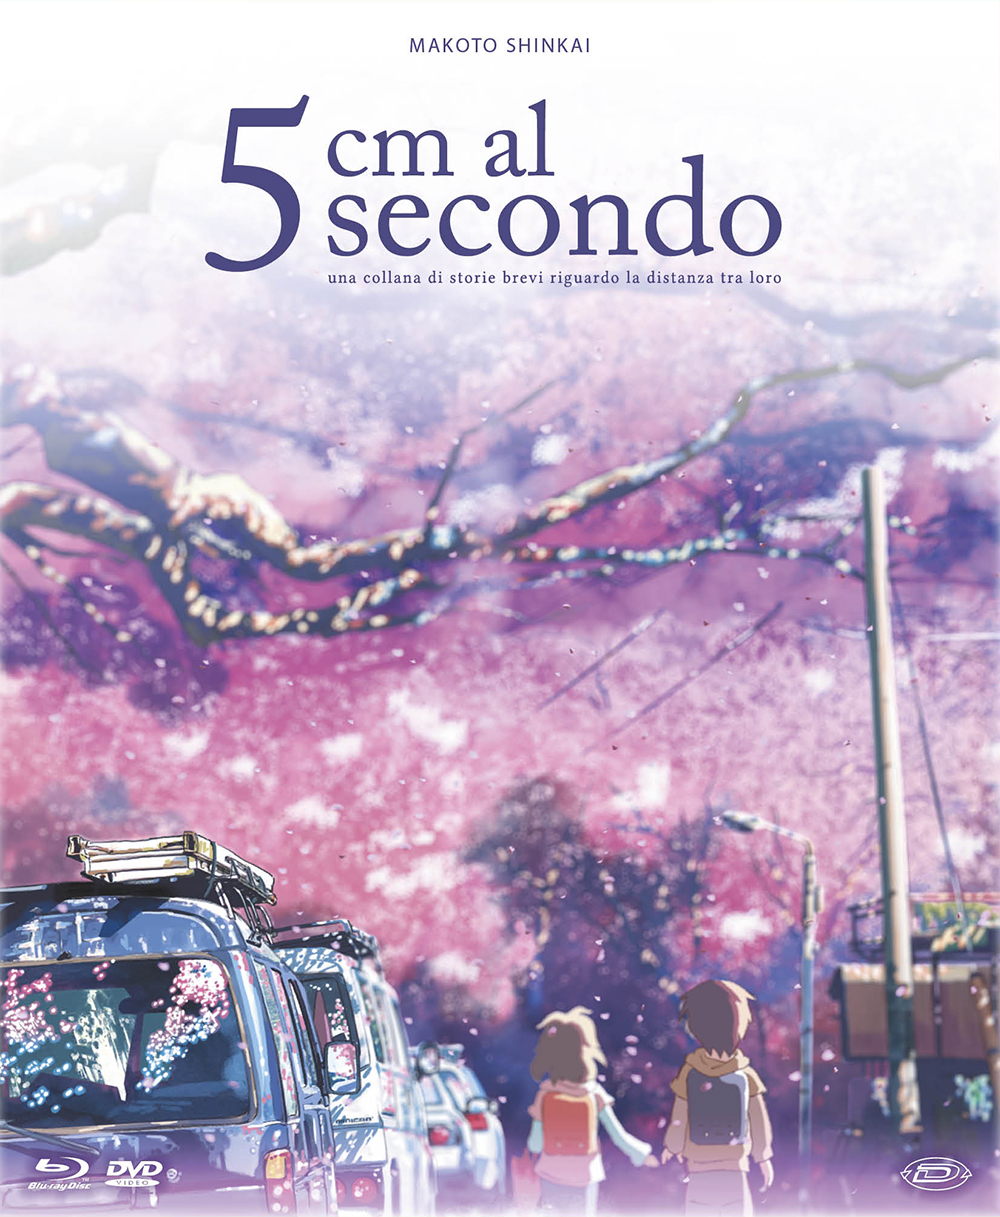 5 CM AL SECONDO (LIMITED EDITION DIGIPACK) (2 BLU-RAY+DVD+BOOKLE